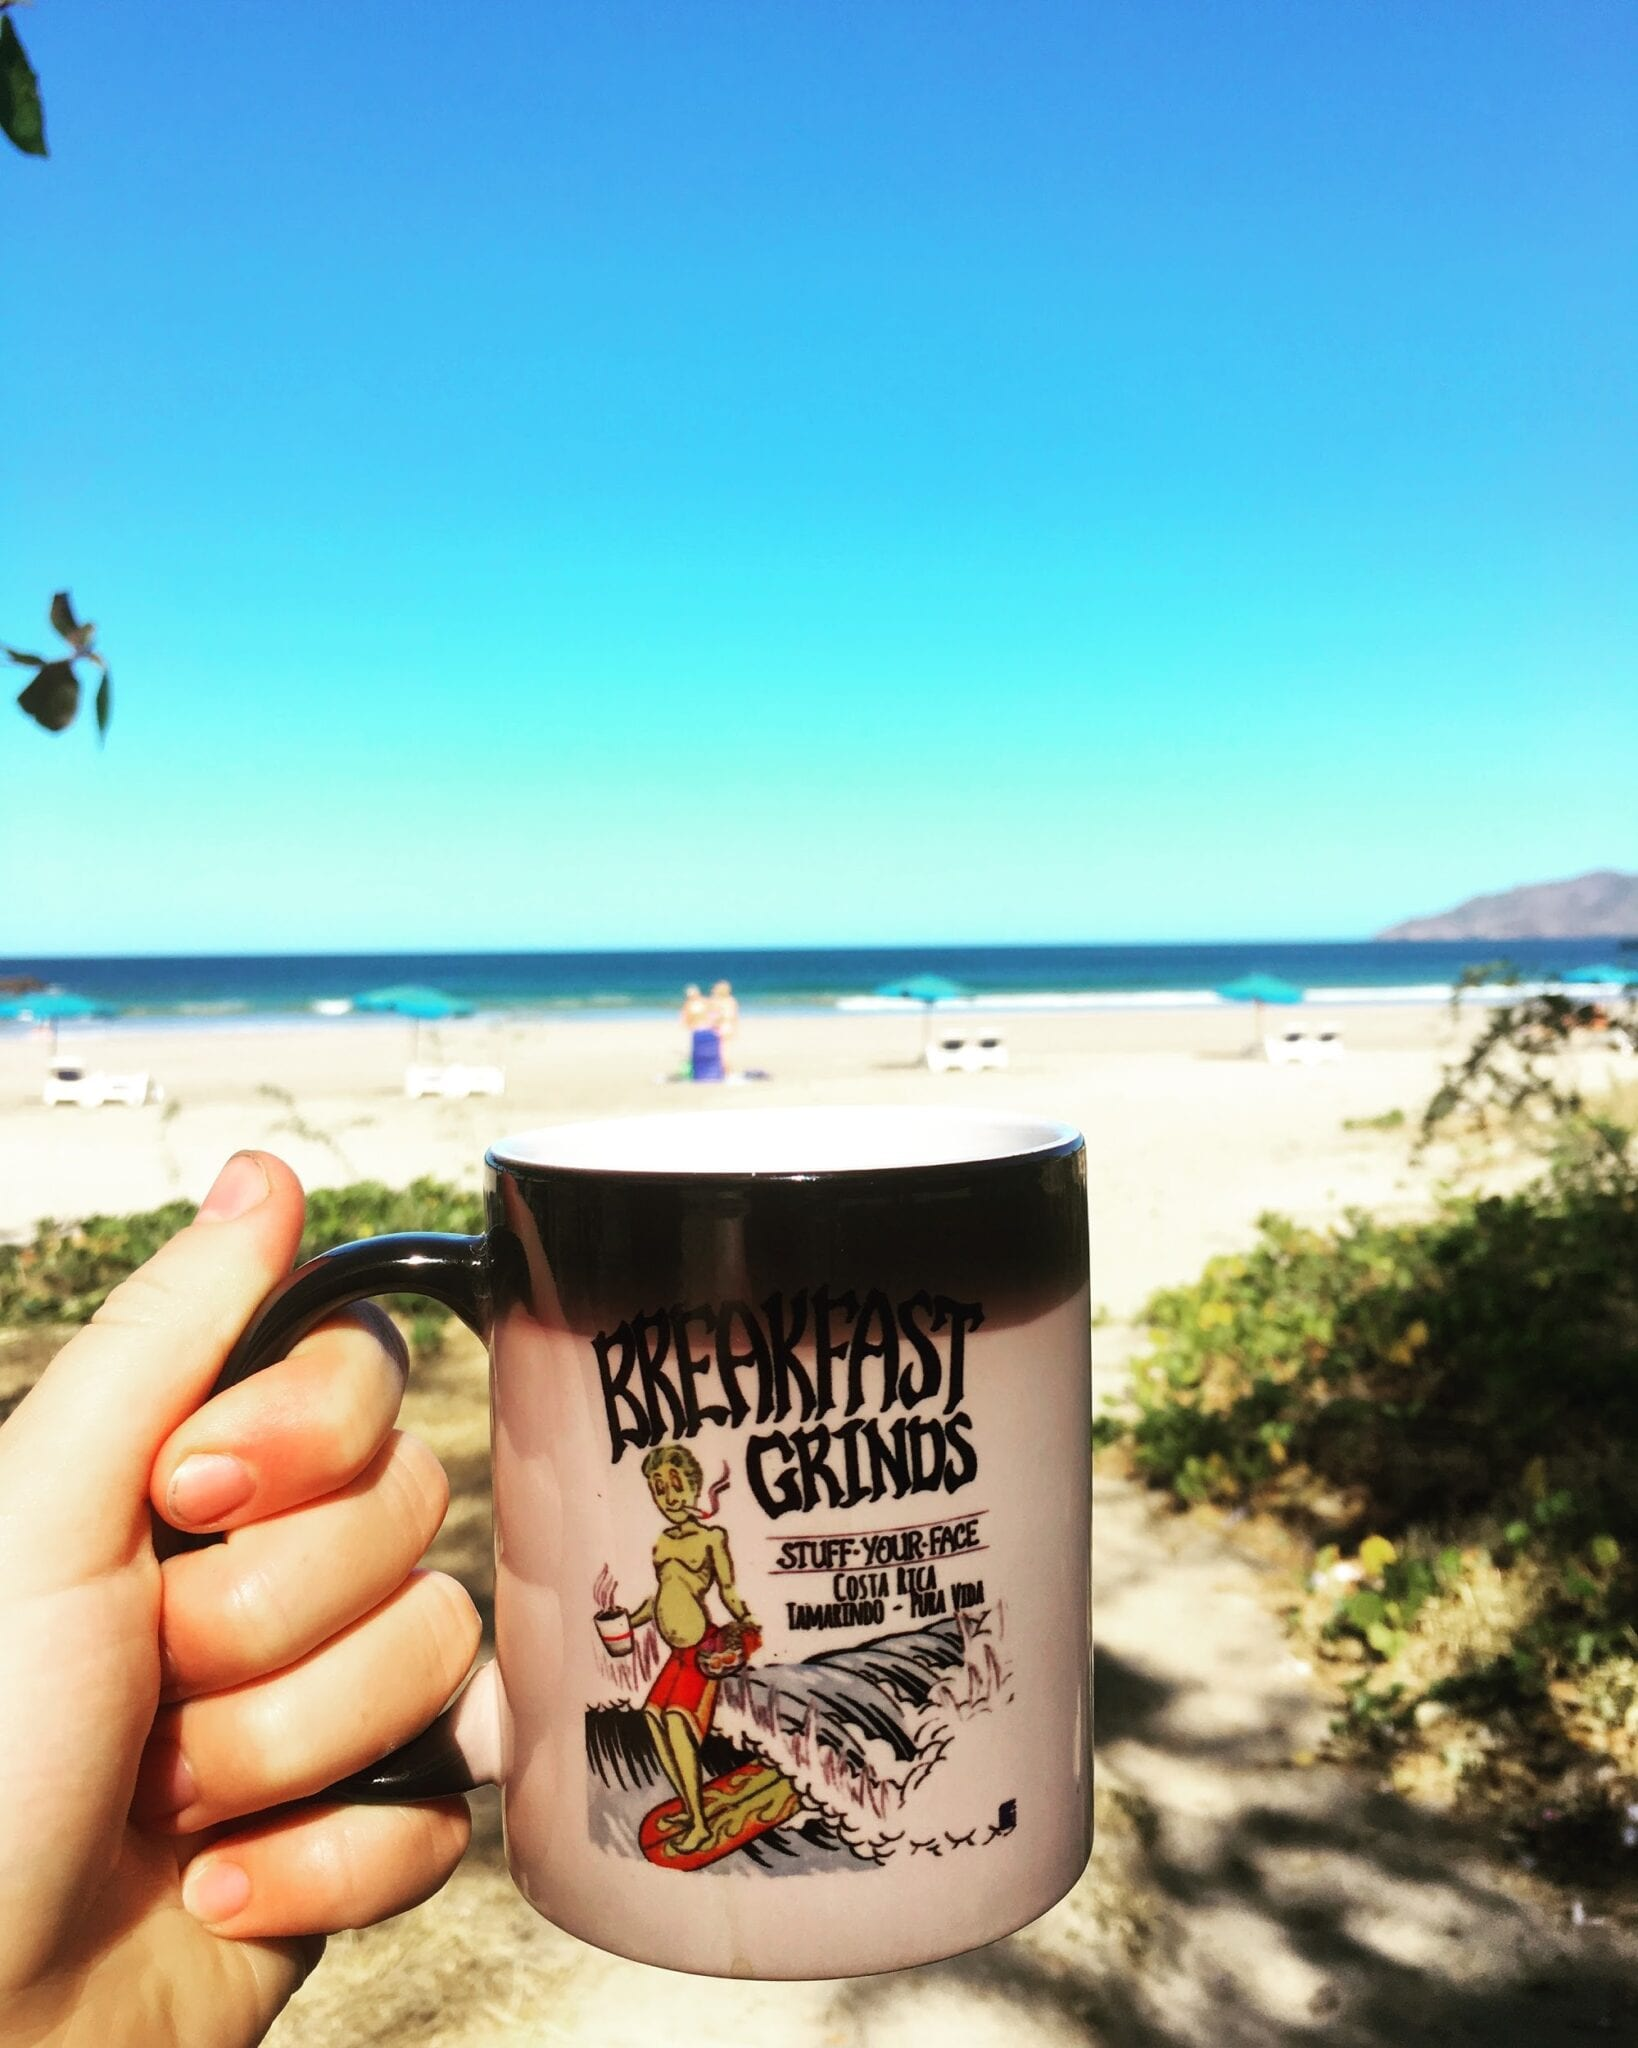 Morning cup of coffee on the beach.